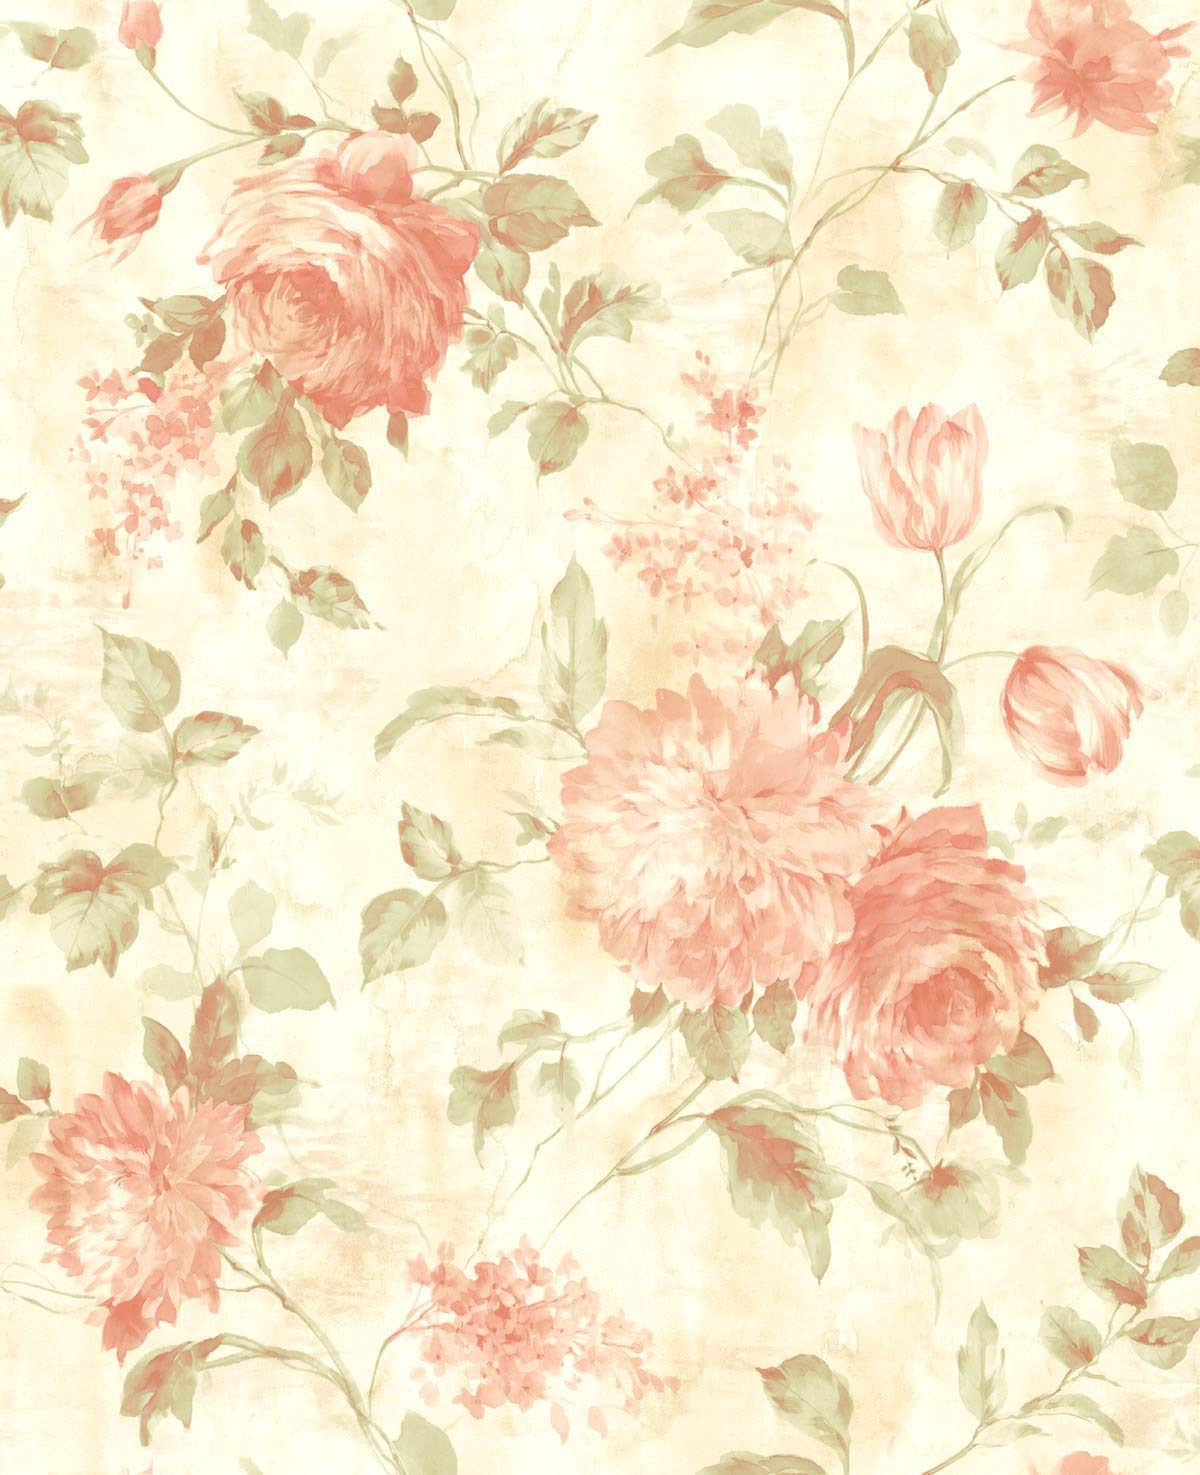 Vintage Floral Peach Wallpapers - Wallpaper Cave